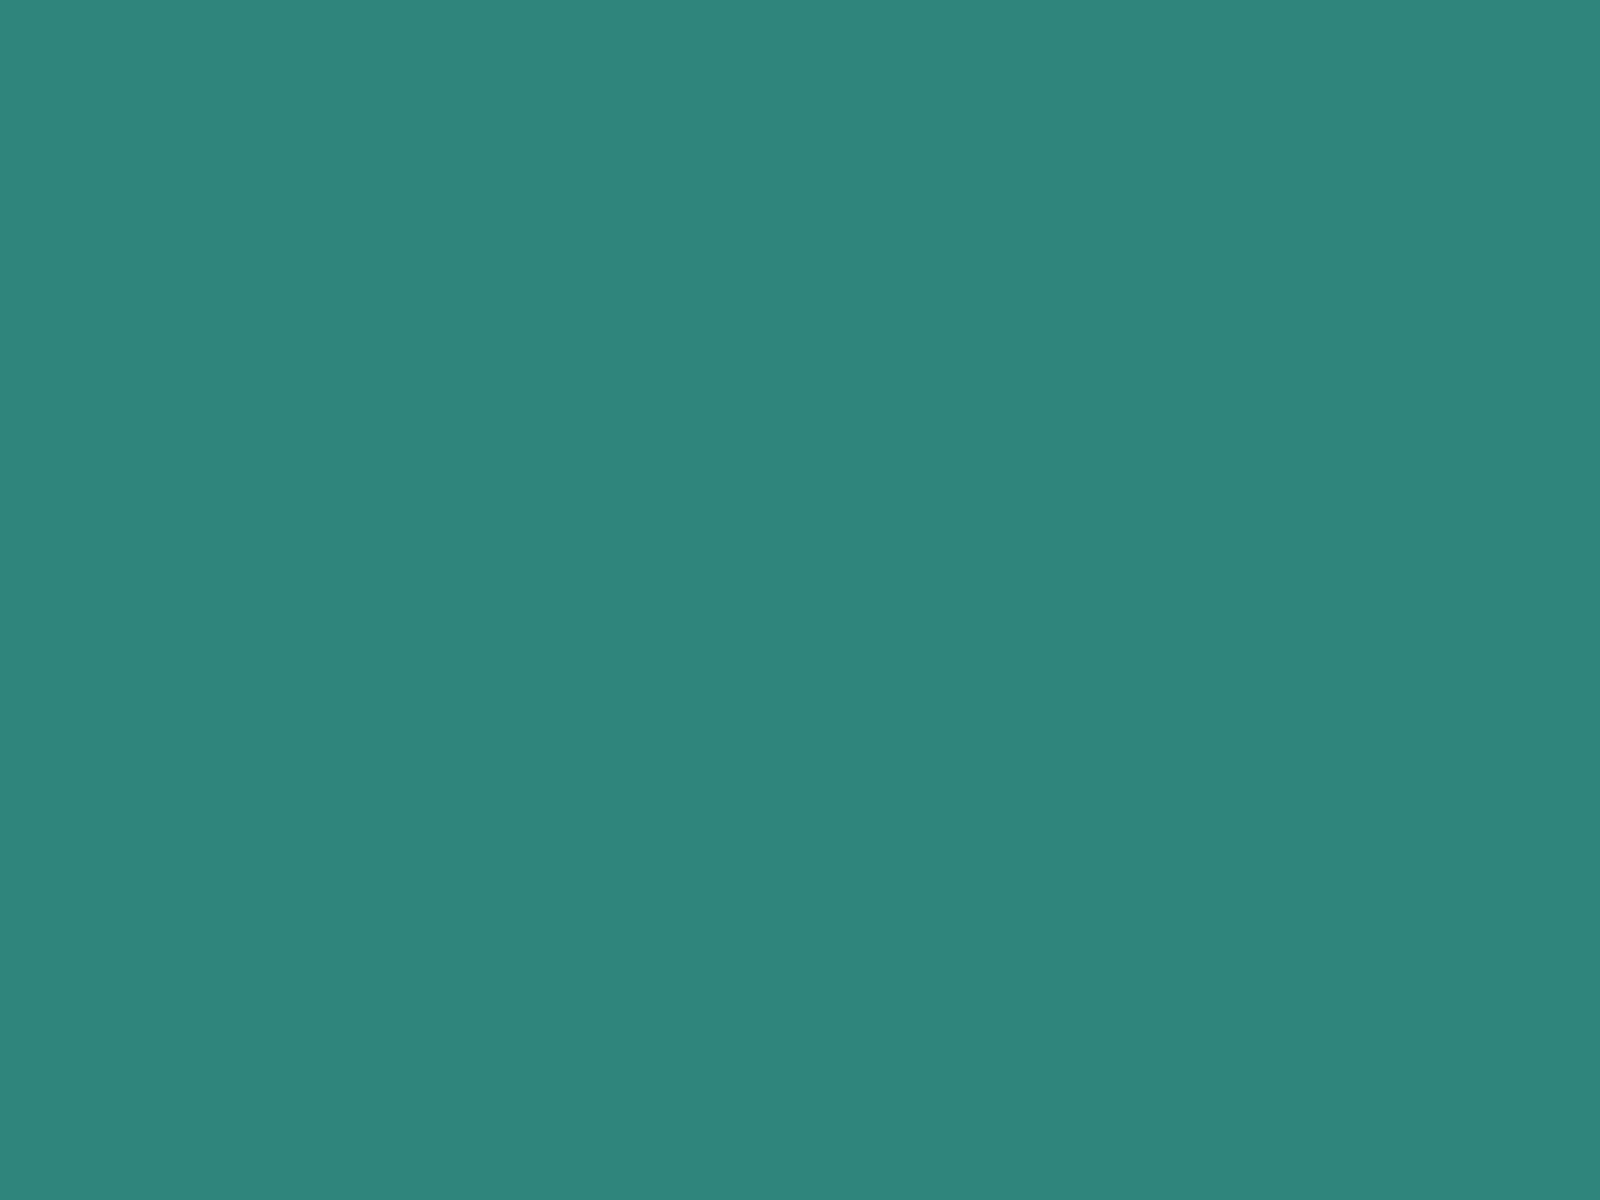 1600x1200 Celadon Green Solid Color Background